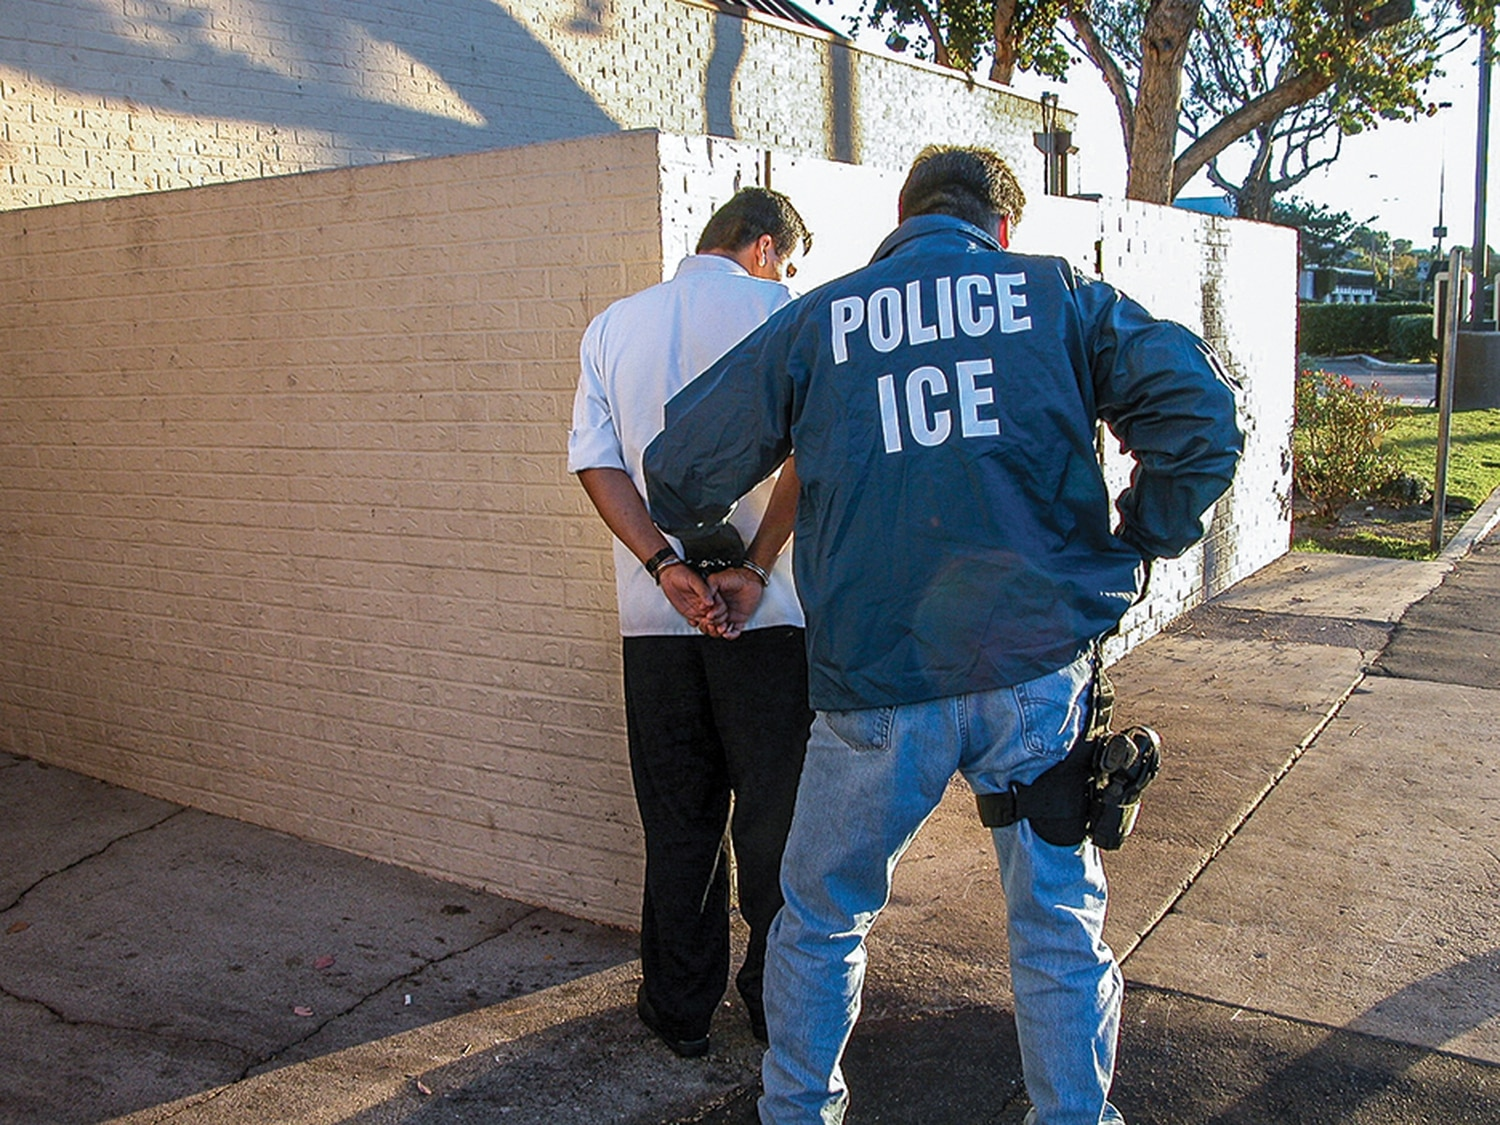 ICE confirms it conducted enforcement in our region from Feb. 26 to March 2, but won't say much else.